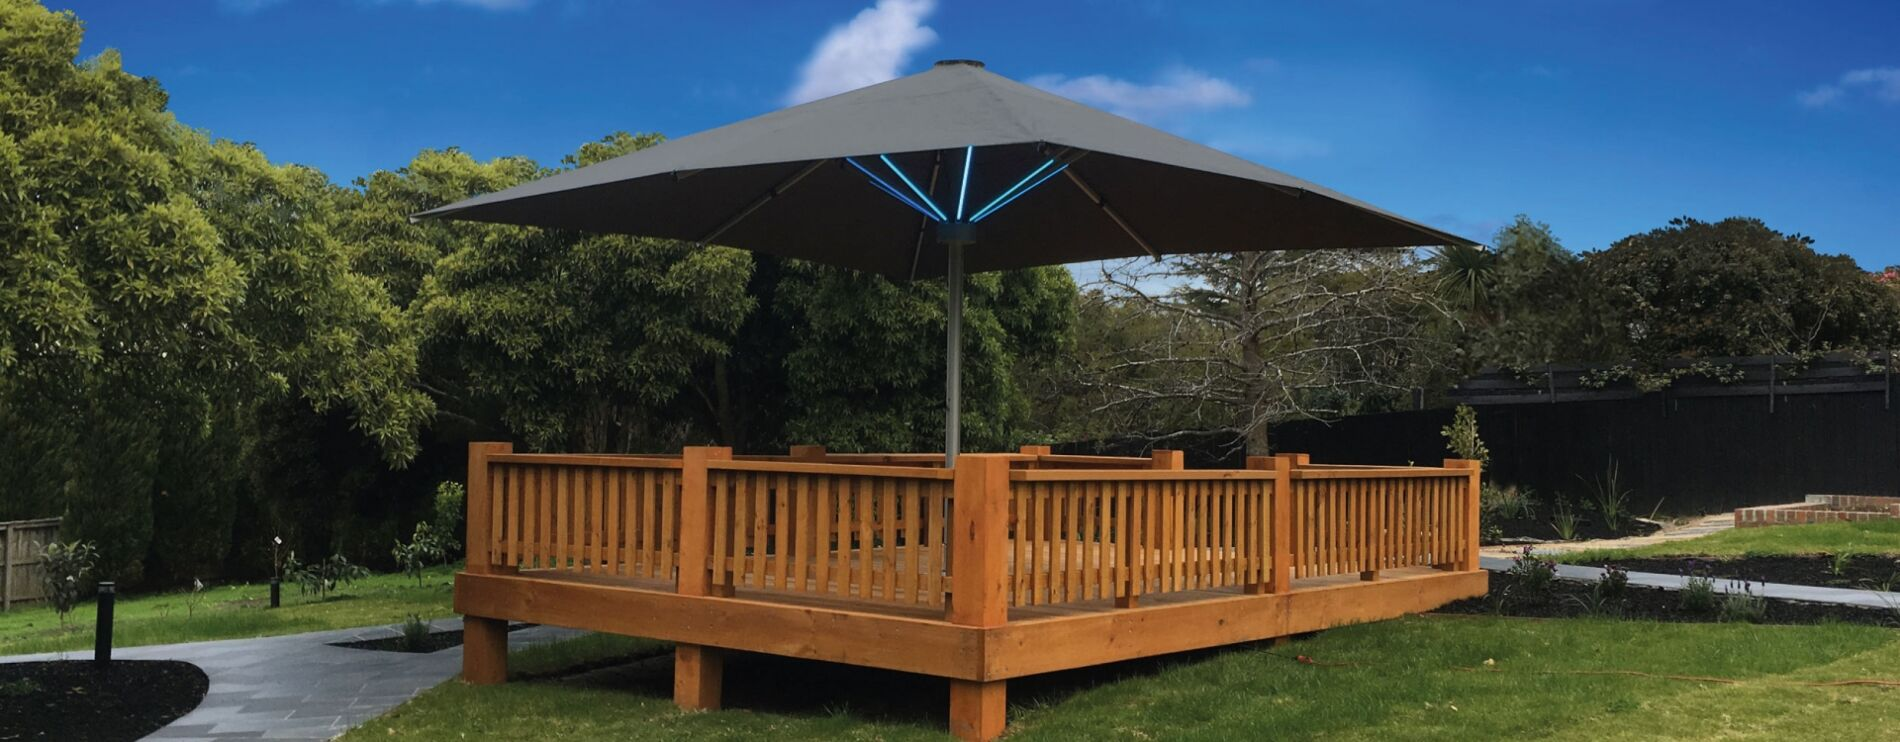 Tempest LED Umbrella with Lights